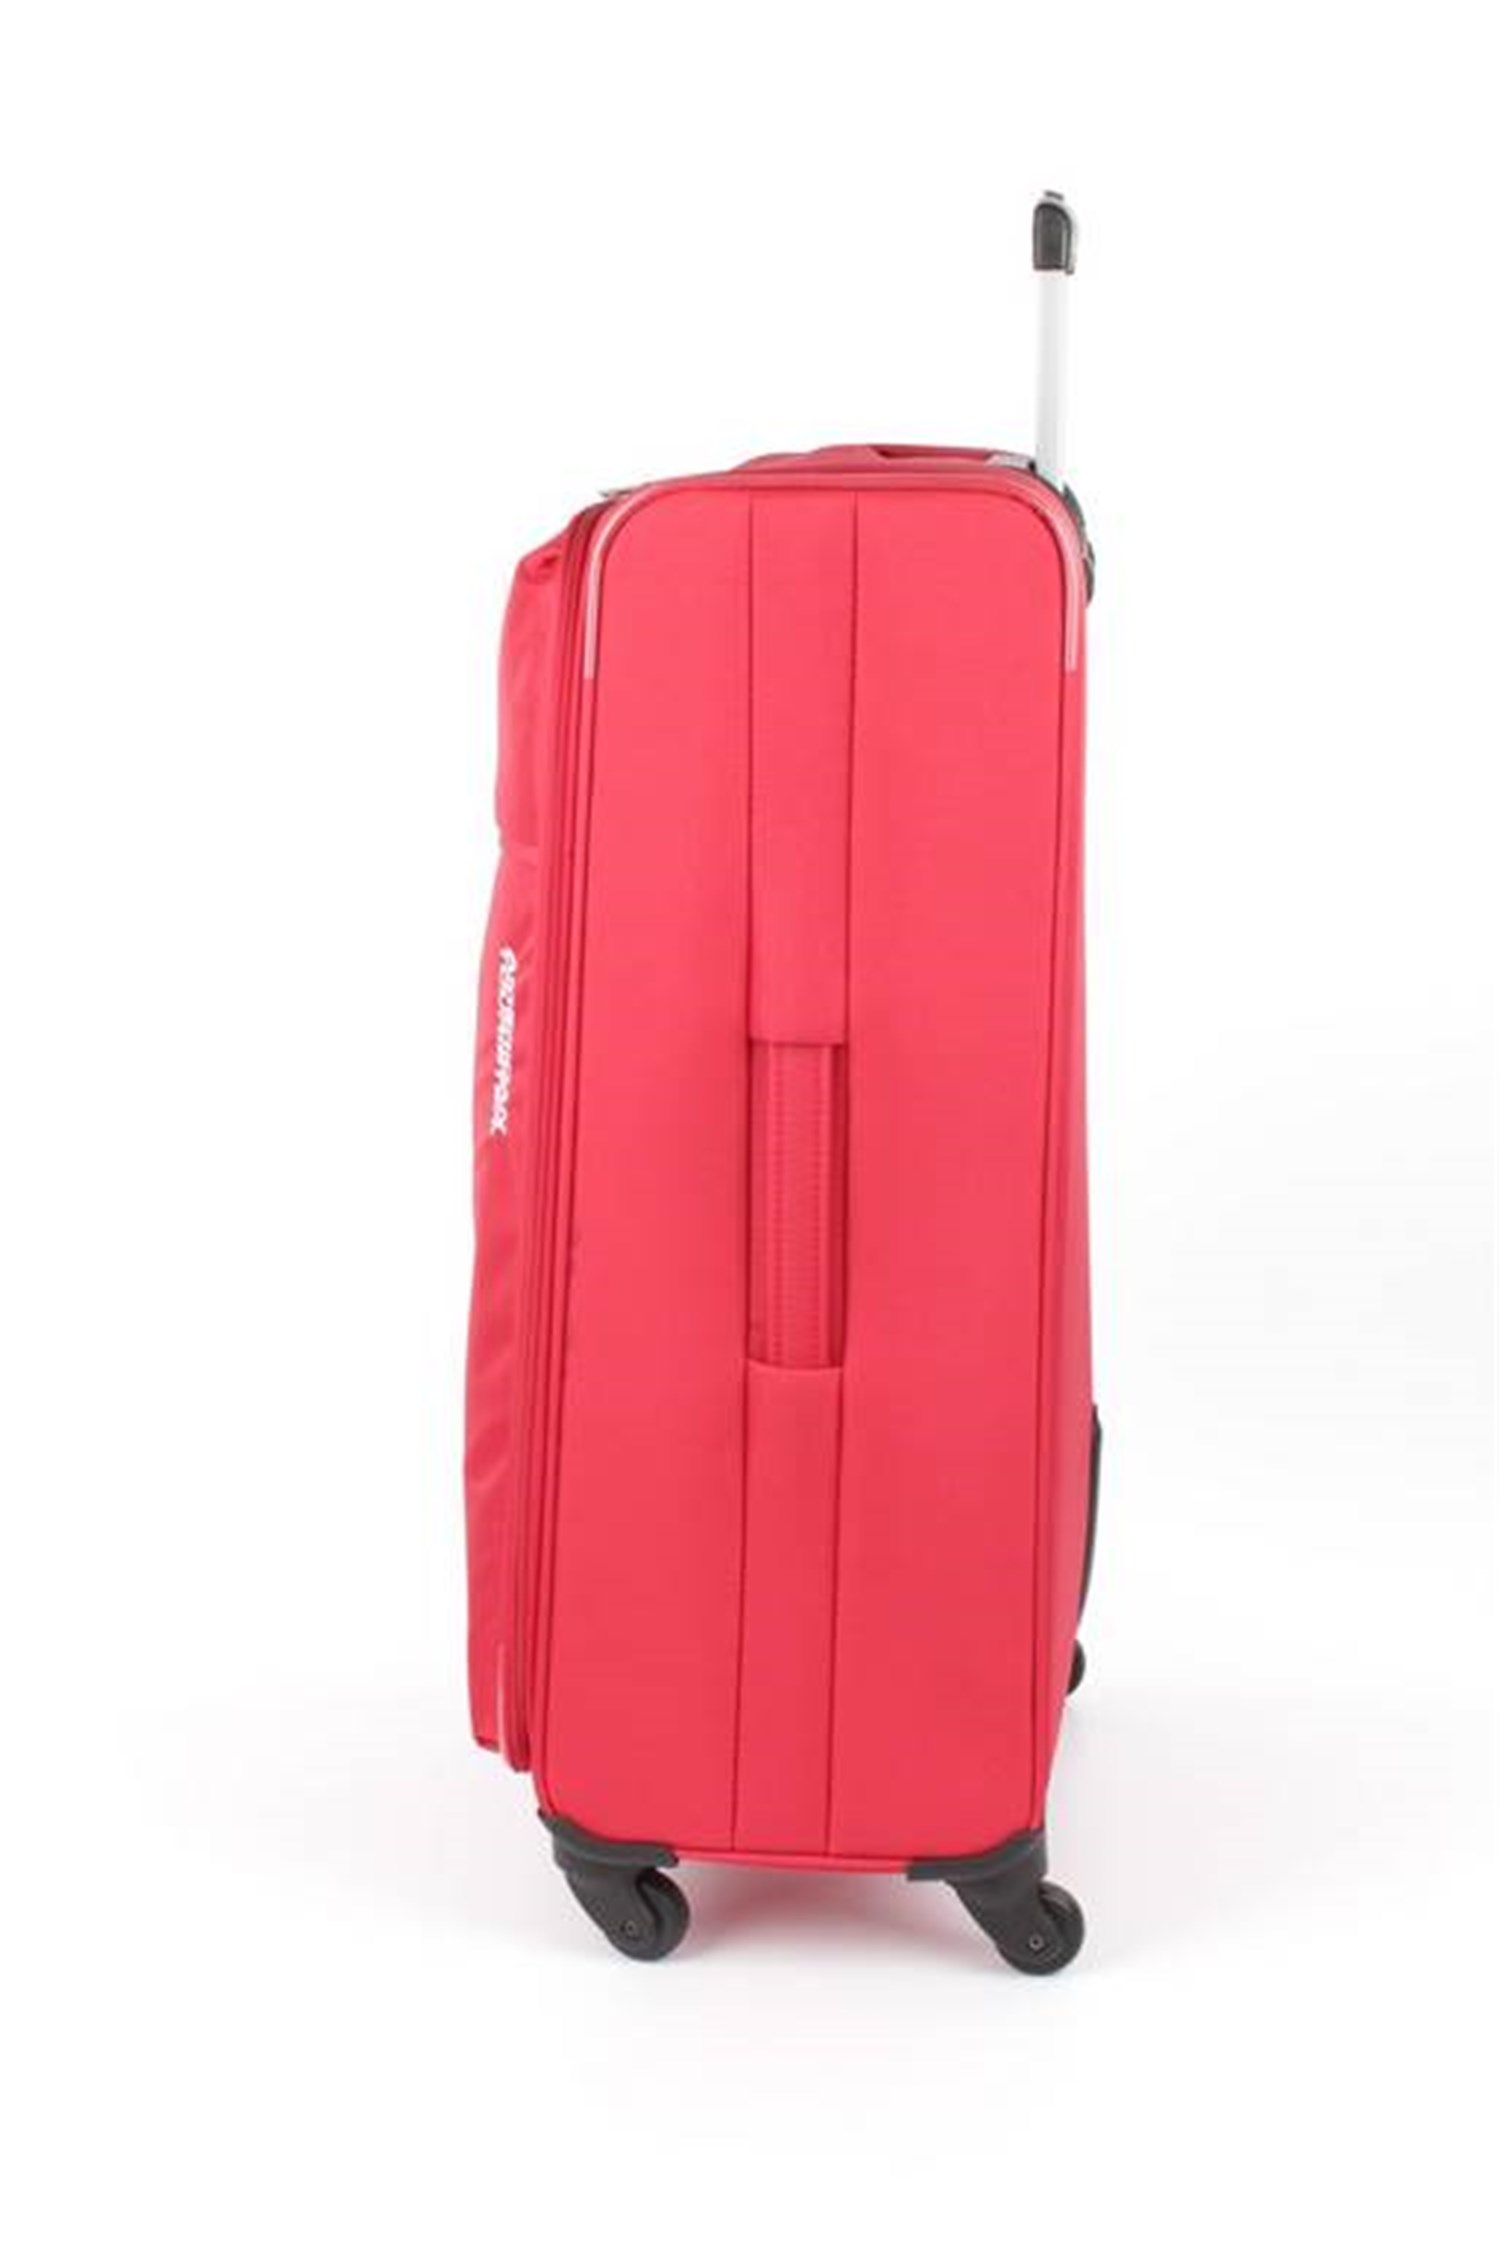 American Tourister Bags suitcases Great RED 82A000007